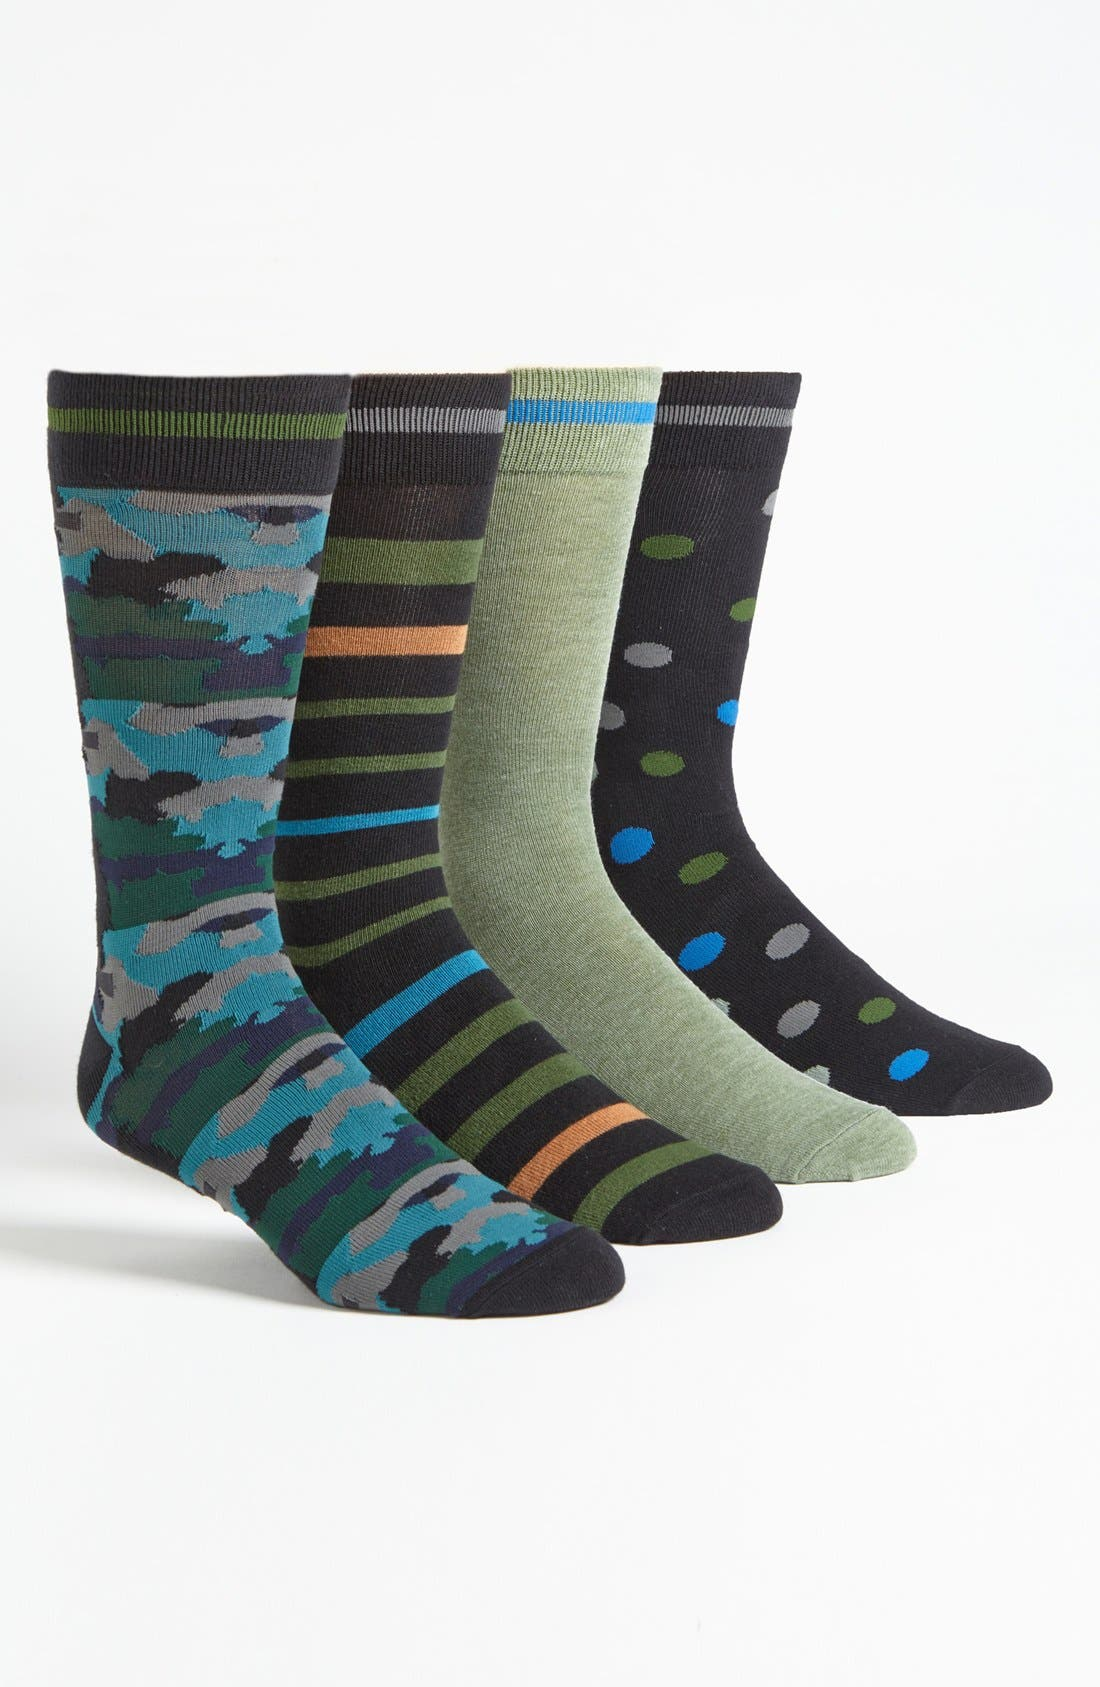 Alternate Image 1 Selected - Basic Sock 'Bottoms Out' Pattern Socks (4-Pack)